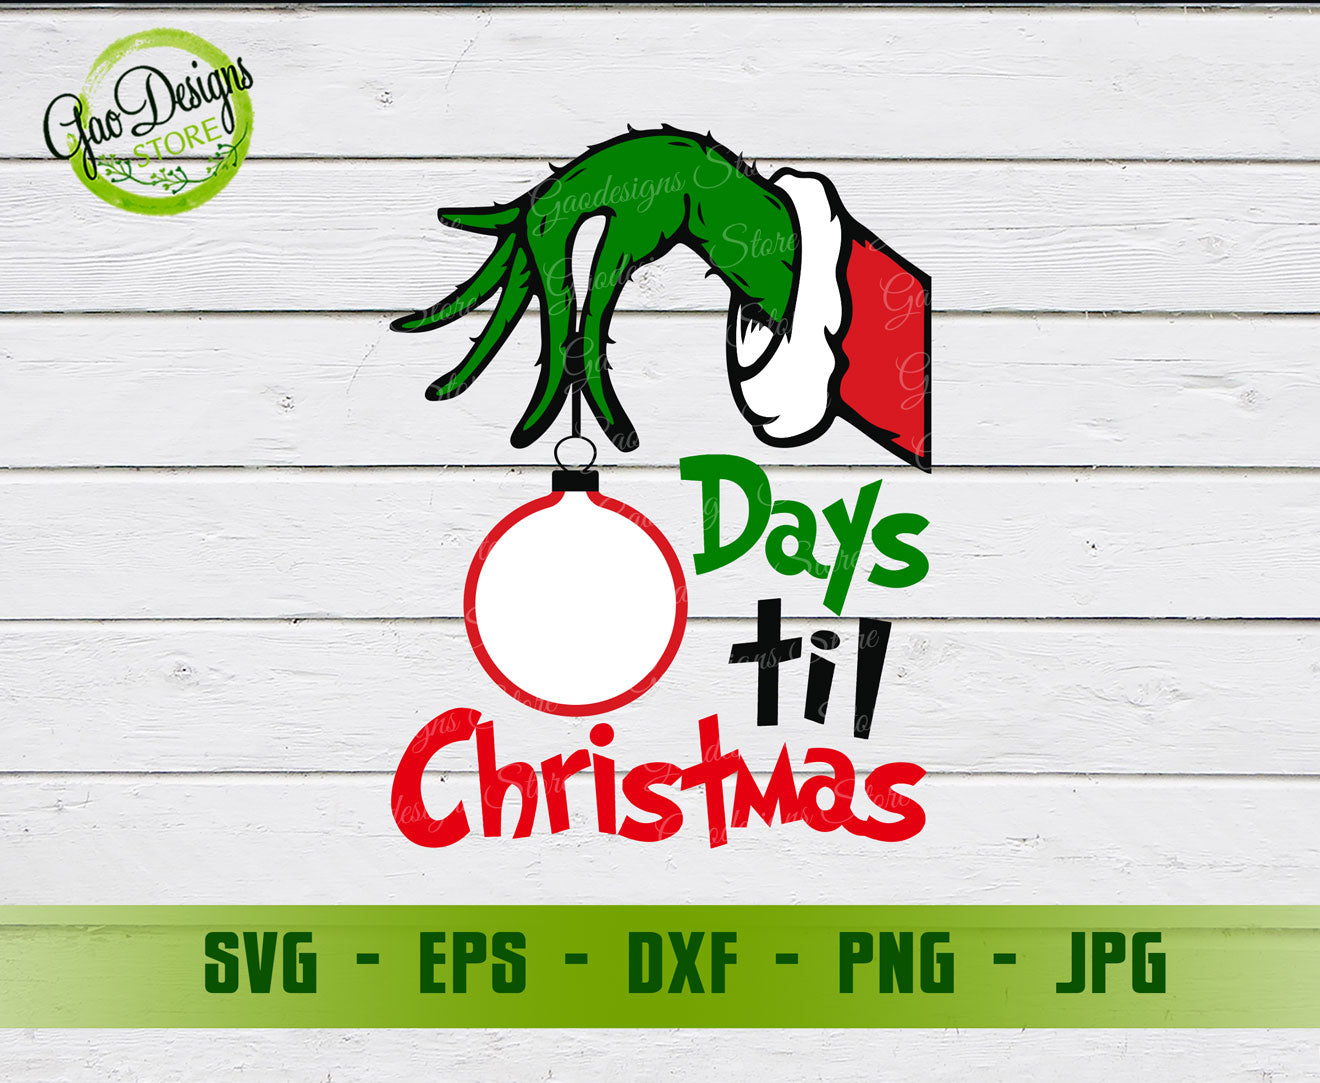 Grinch Hand Countdown Days Until Christmas Svg File Grinch Christmas Countdown Svg Winter Holiday Svg Gaodesigns Store